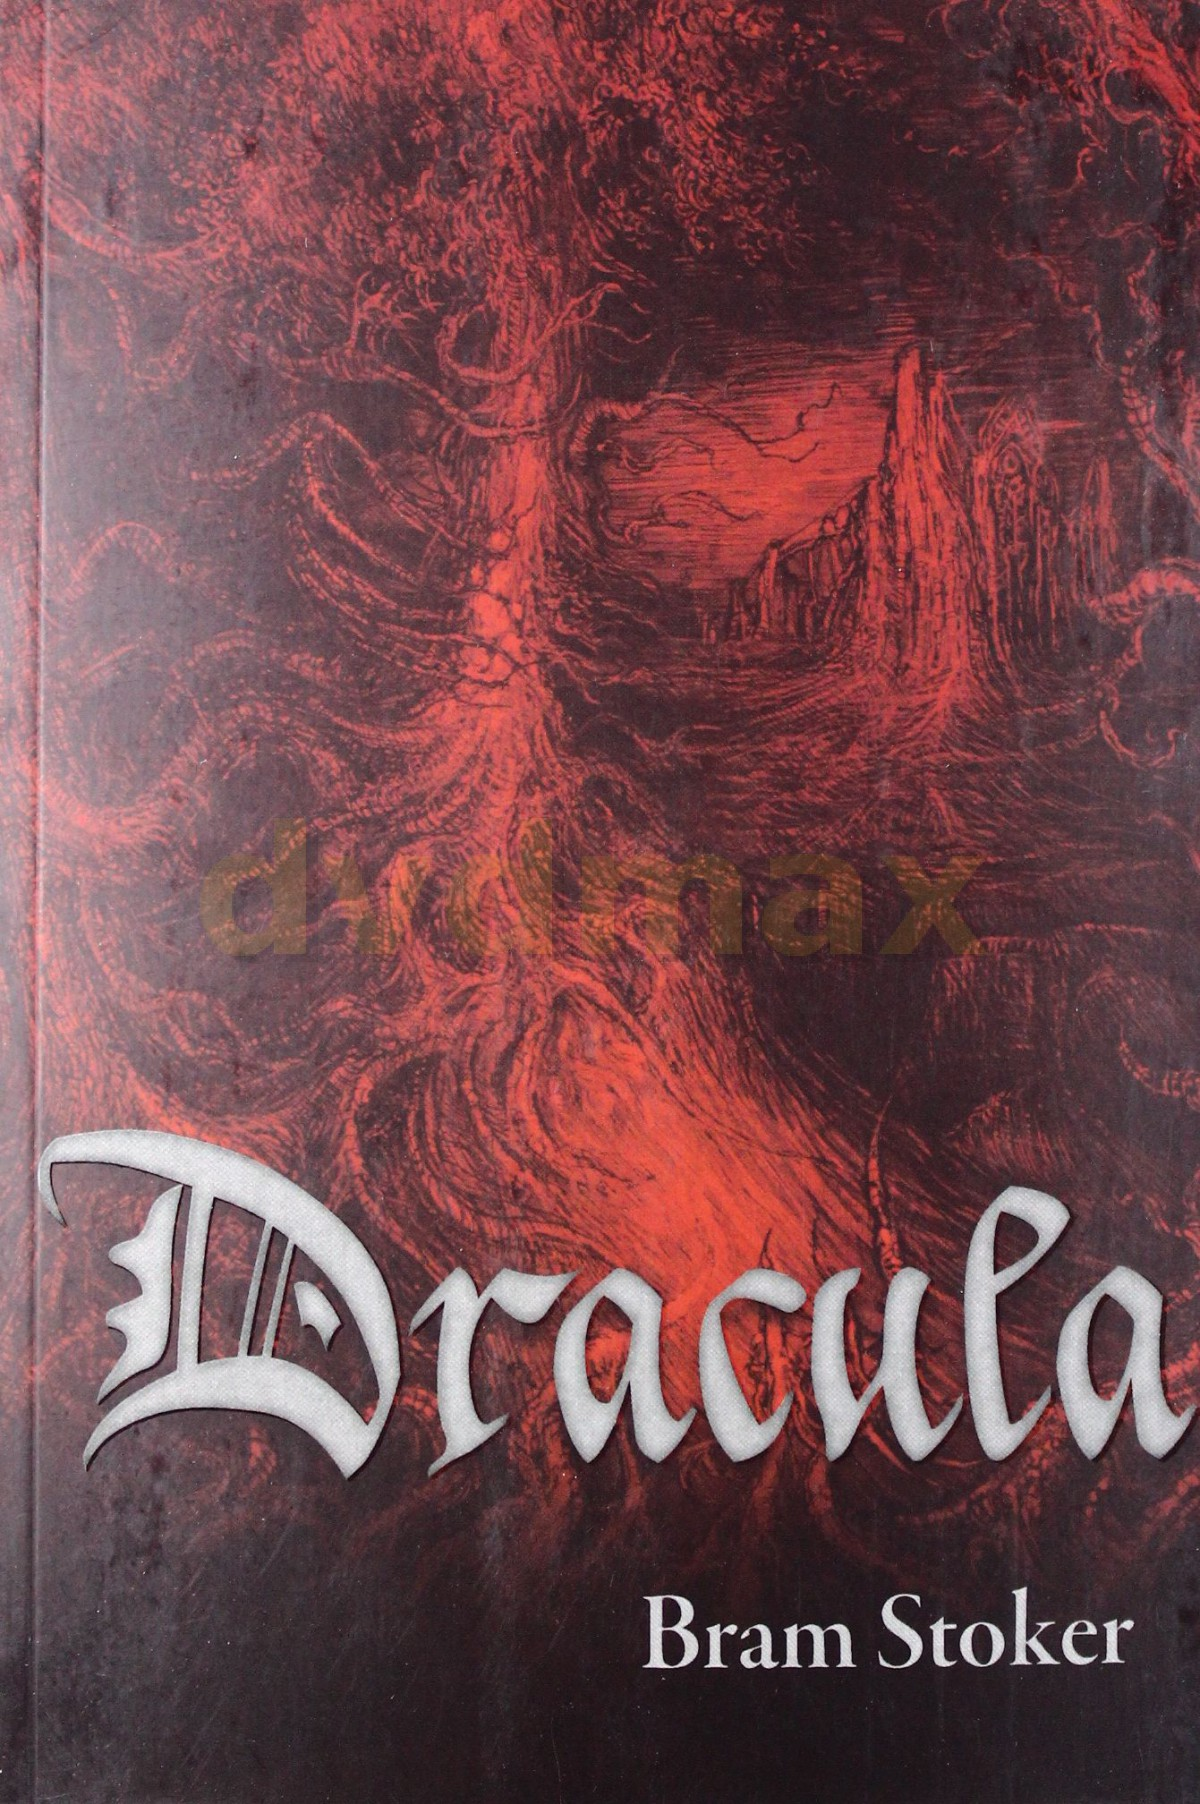 an analysis of bram stokers monster dracula Category: bram stoker dracula essays title: bram stoker's dracula essay about film analysis of dracula by bram stoker - film analysis of dracula by bram stoker.